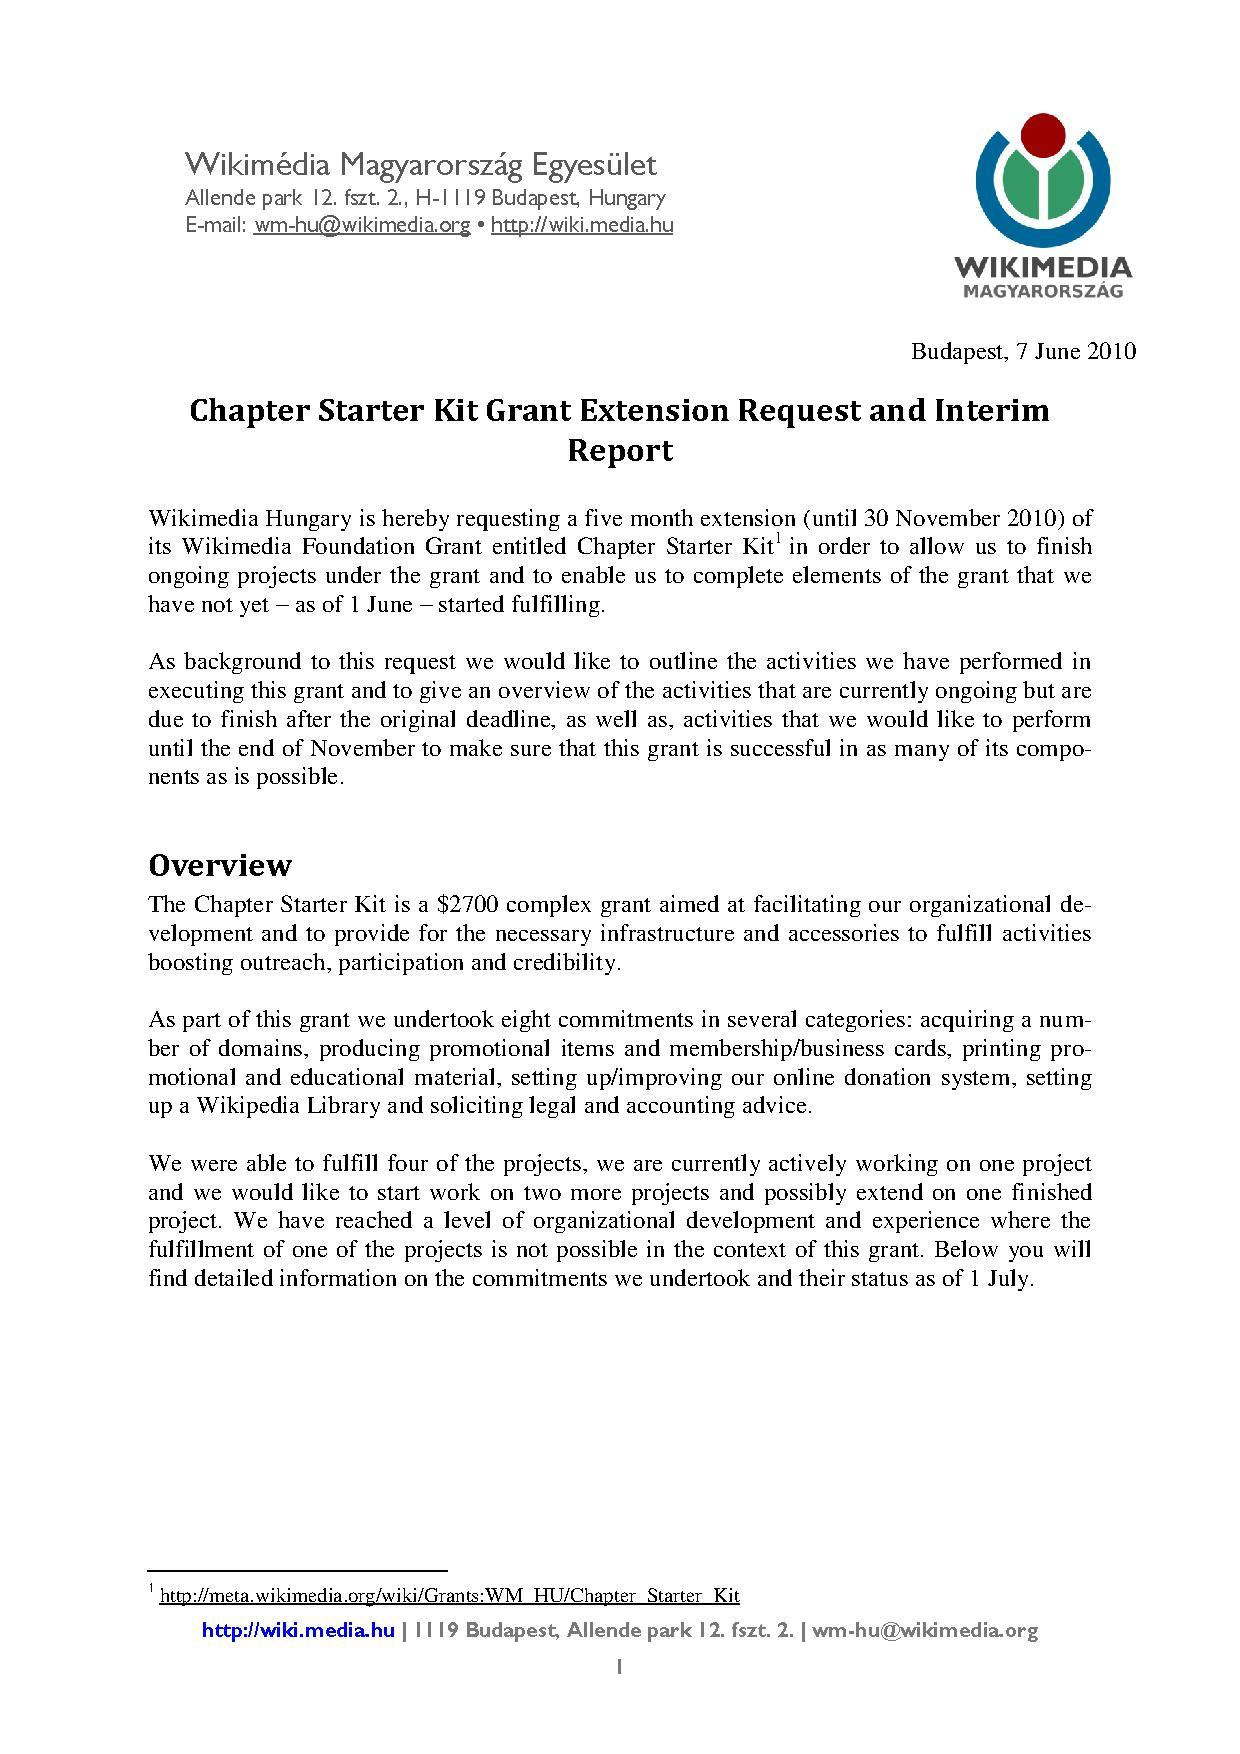 Chapter Starter Kit Grant Extension Request - public.pdf